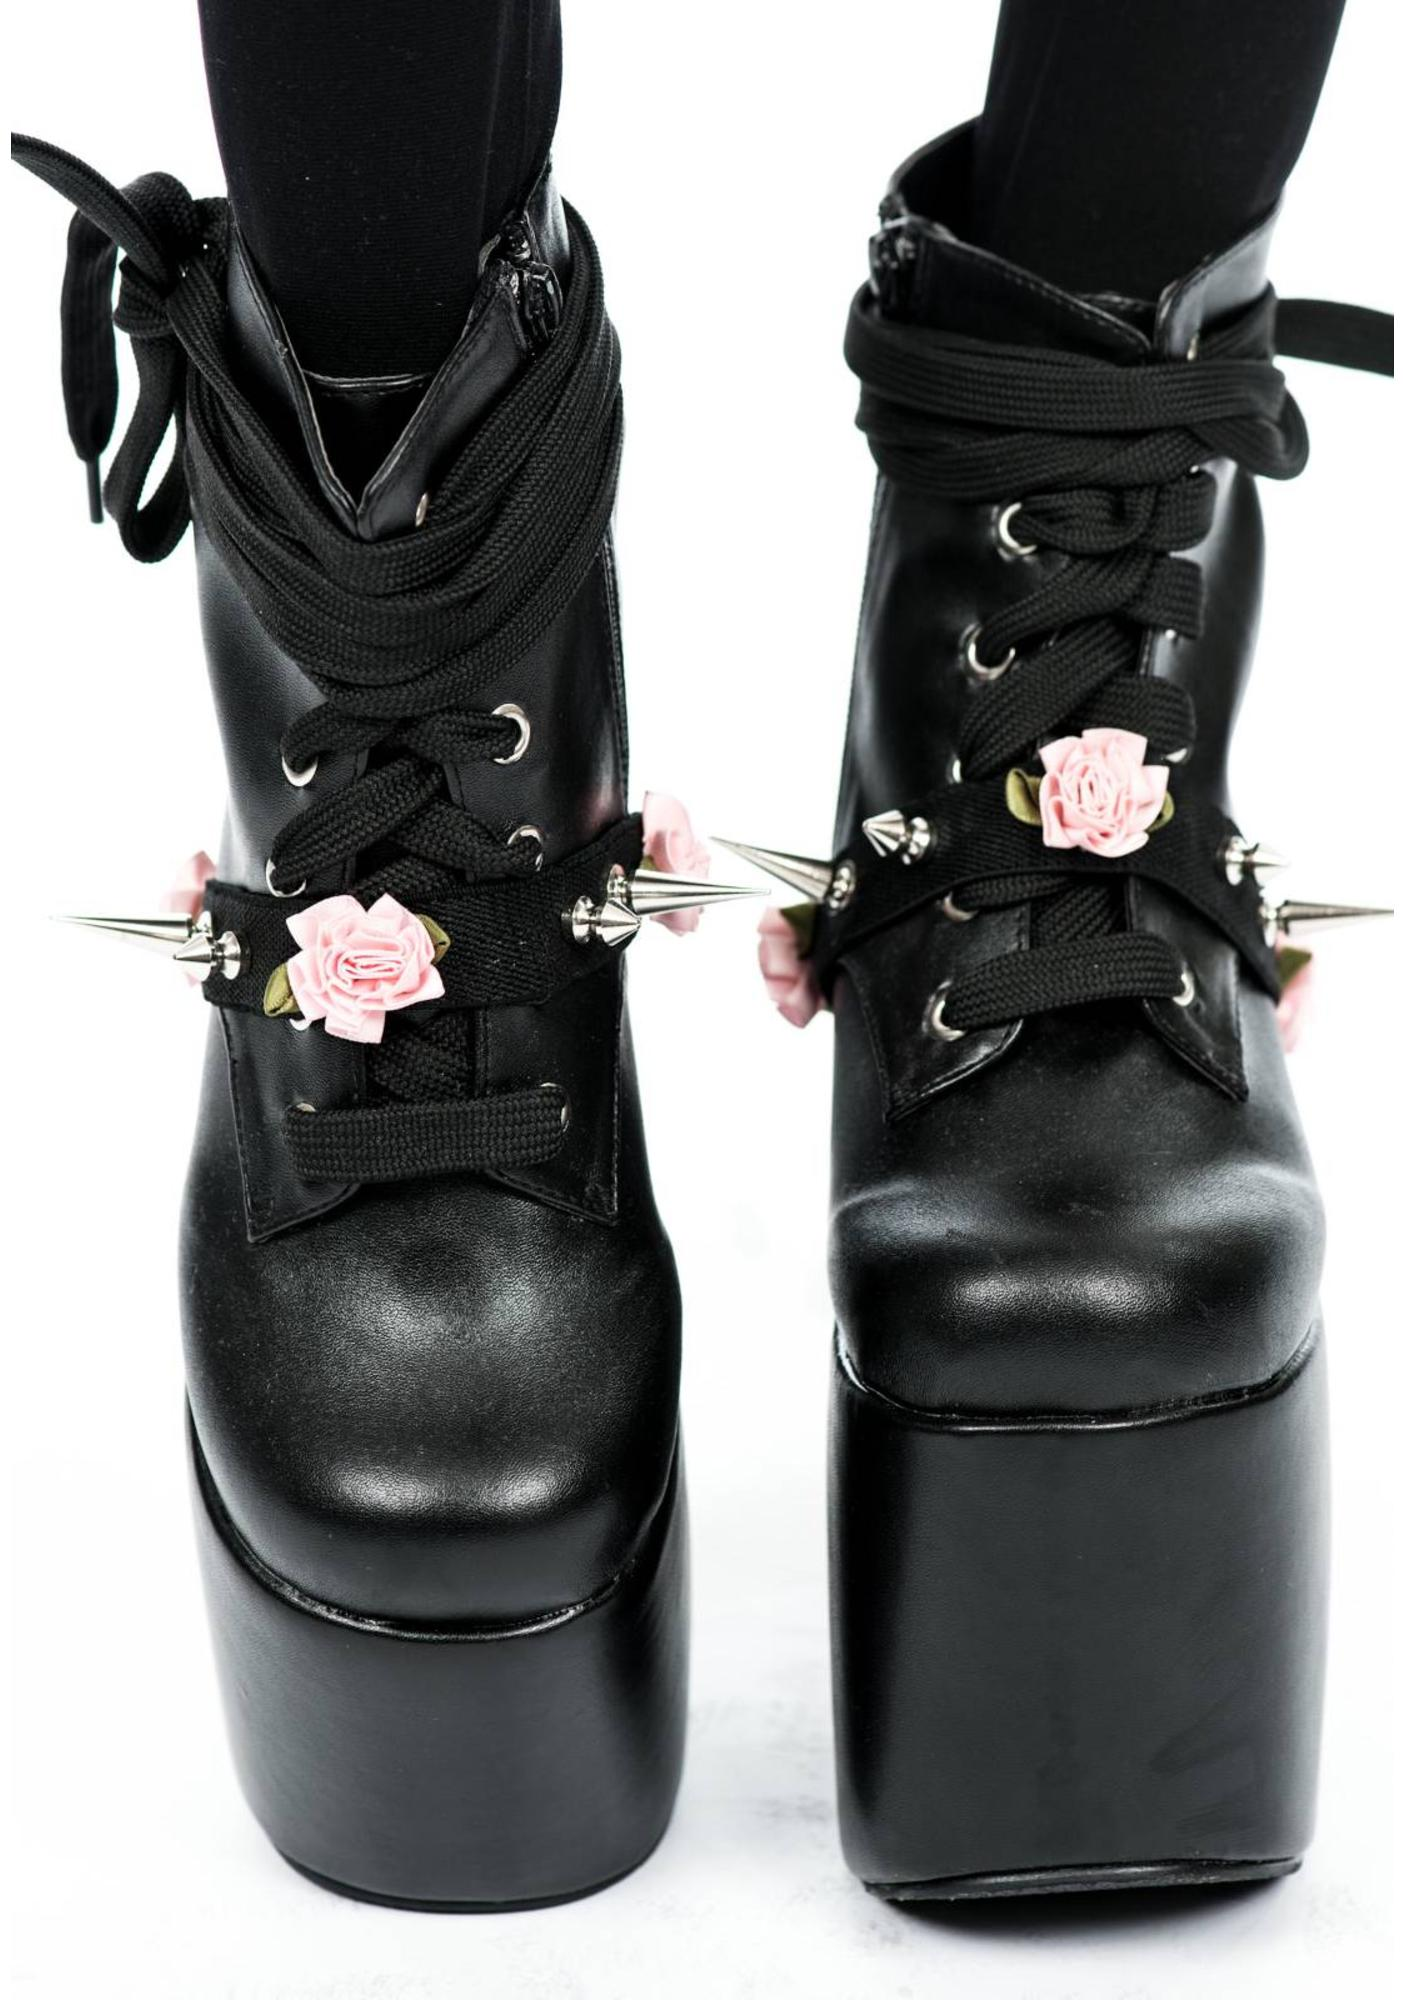 Spikes and Flower Shoe Garter